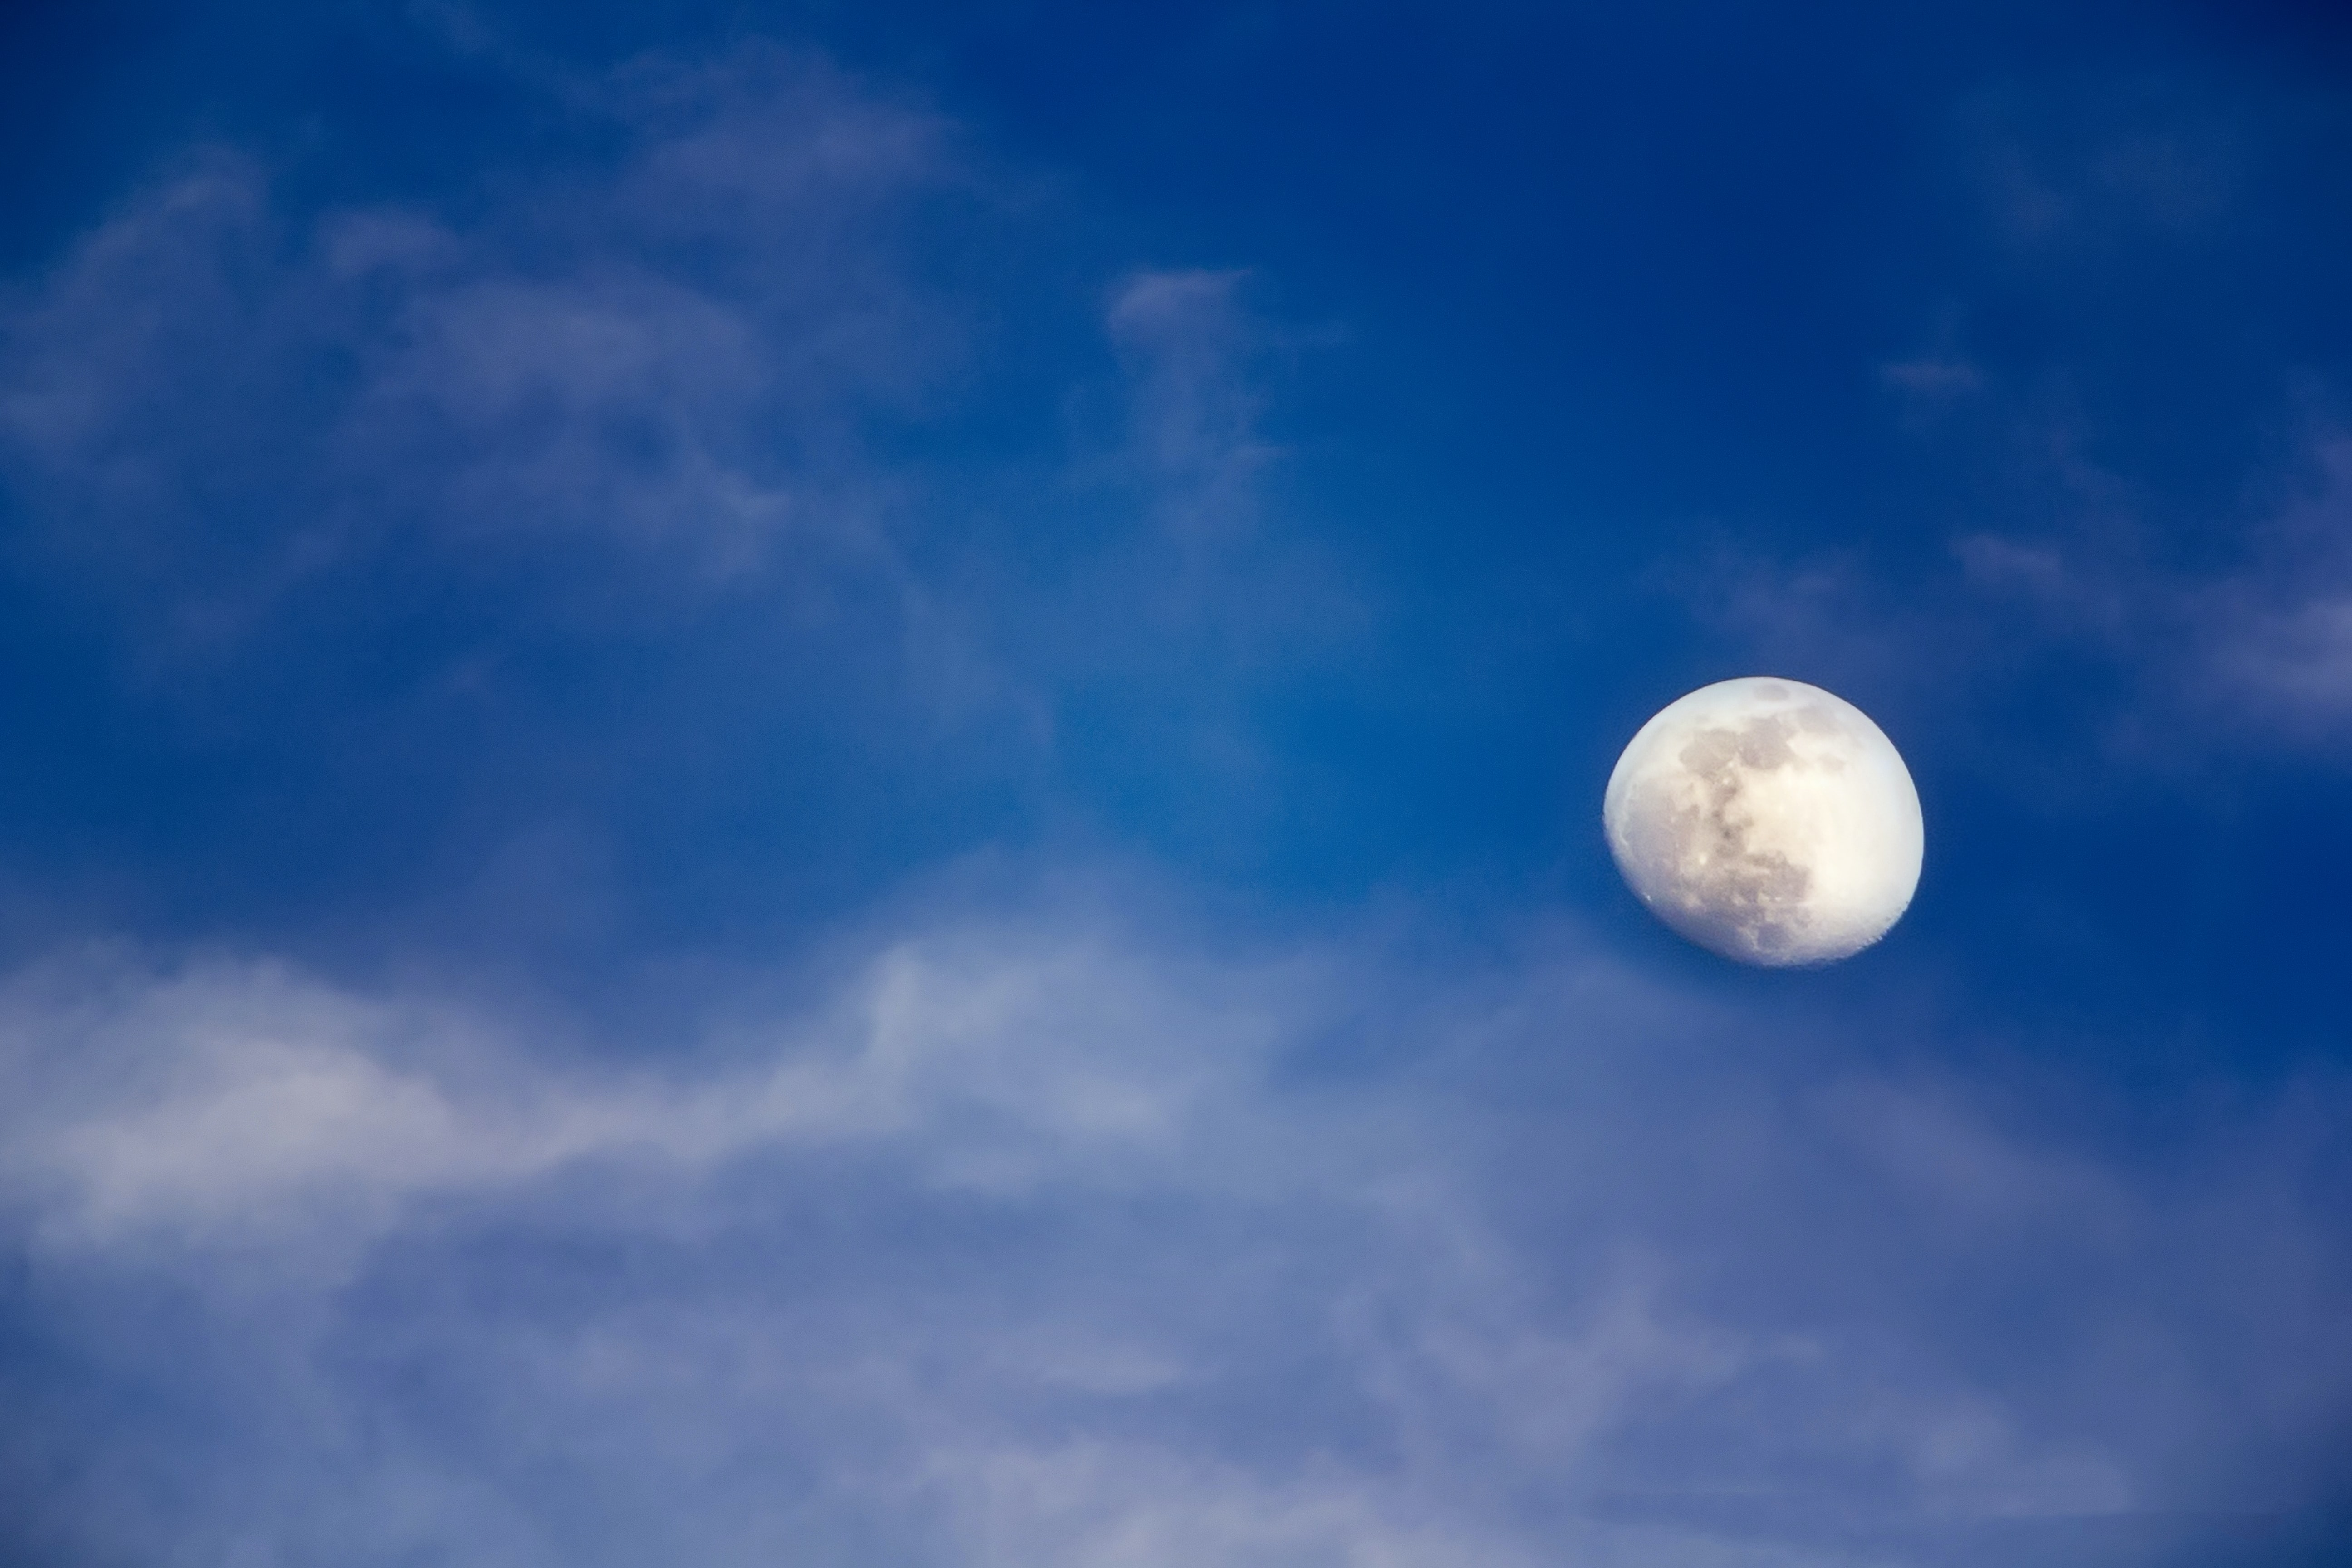 The moon on a cloudy blue sky over Carrillo